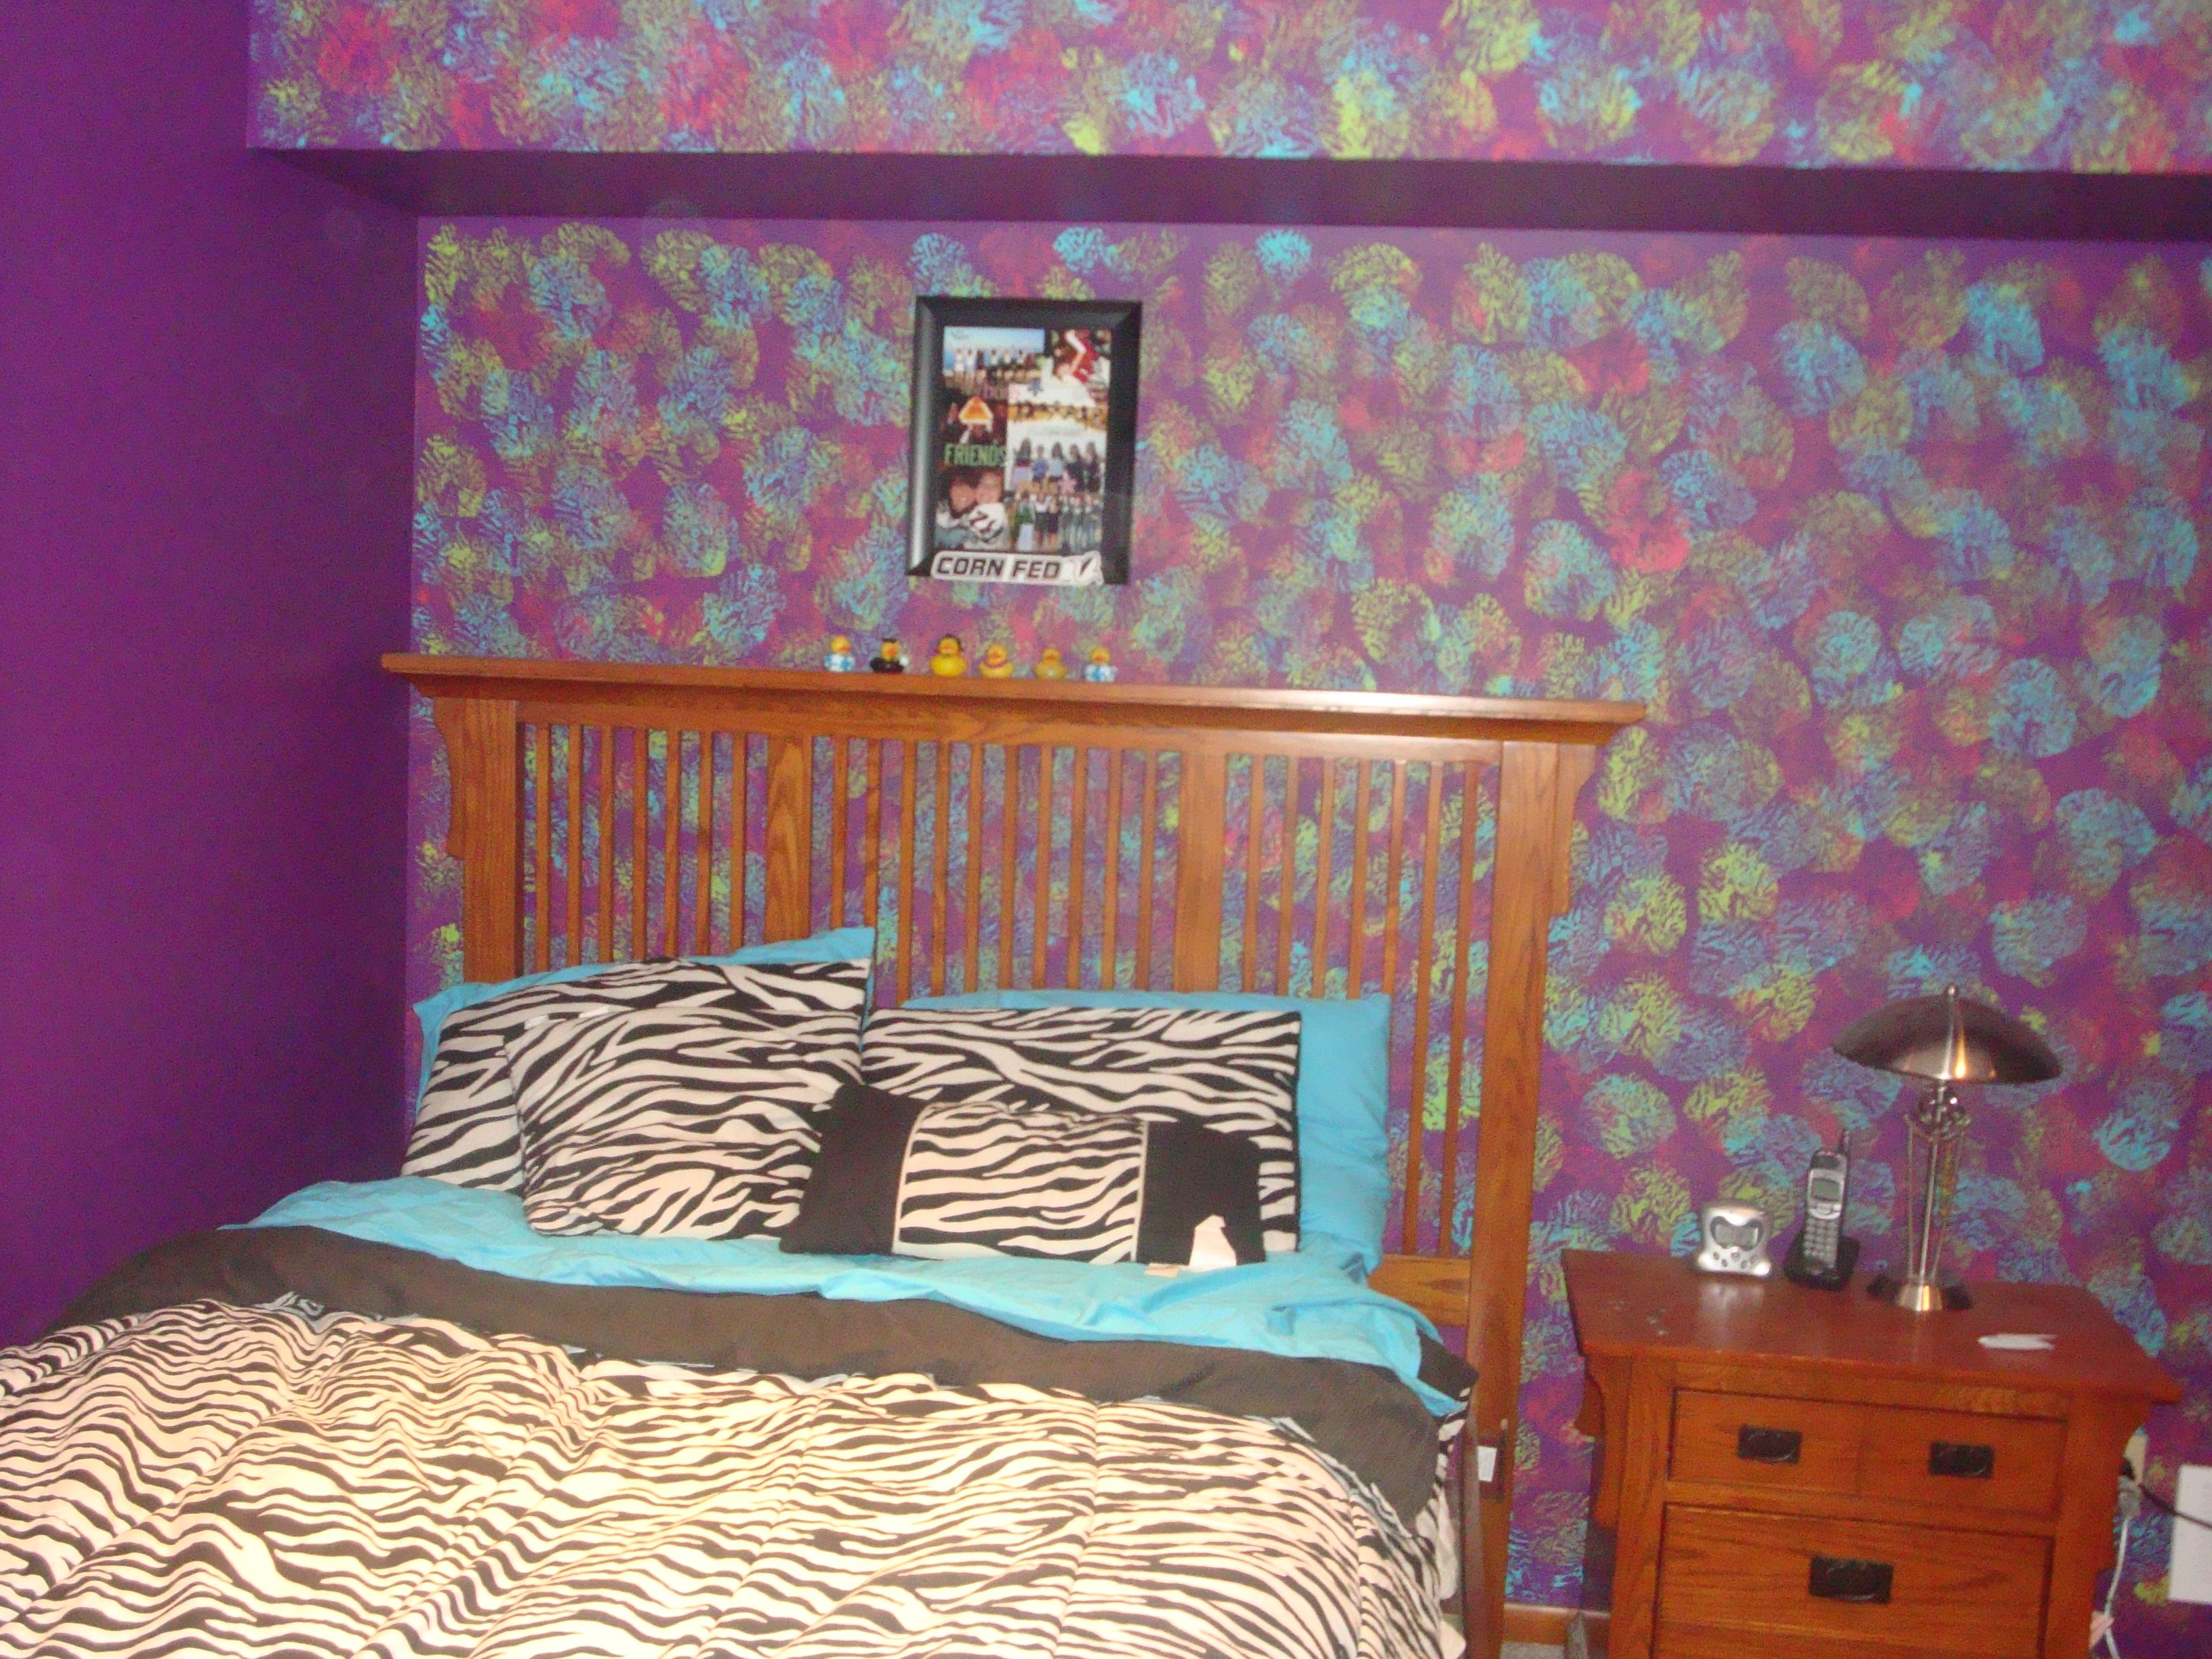 This is my legit bedroom i painted the wall purple first Grey sponge painted walls